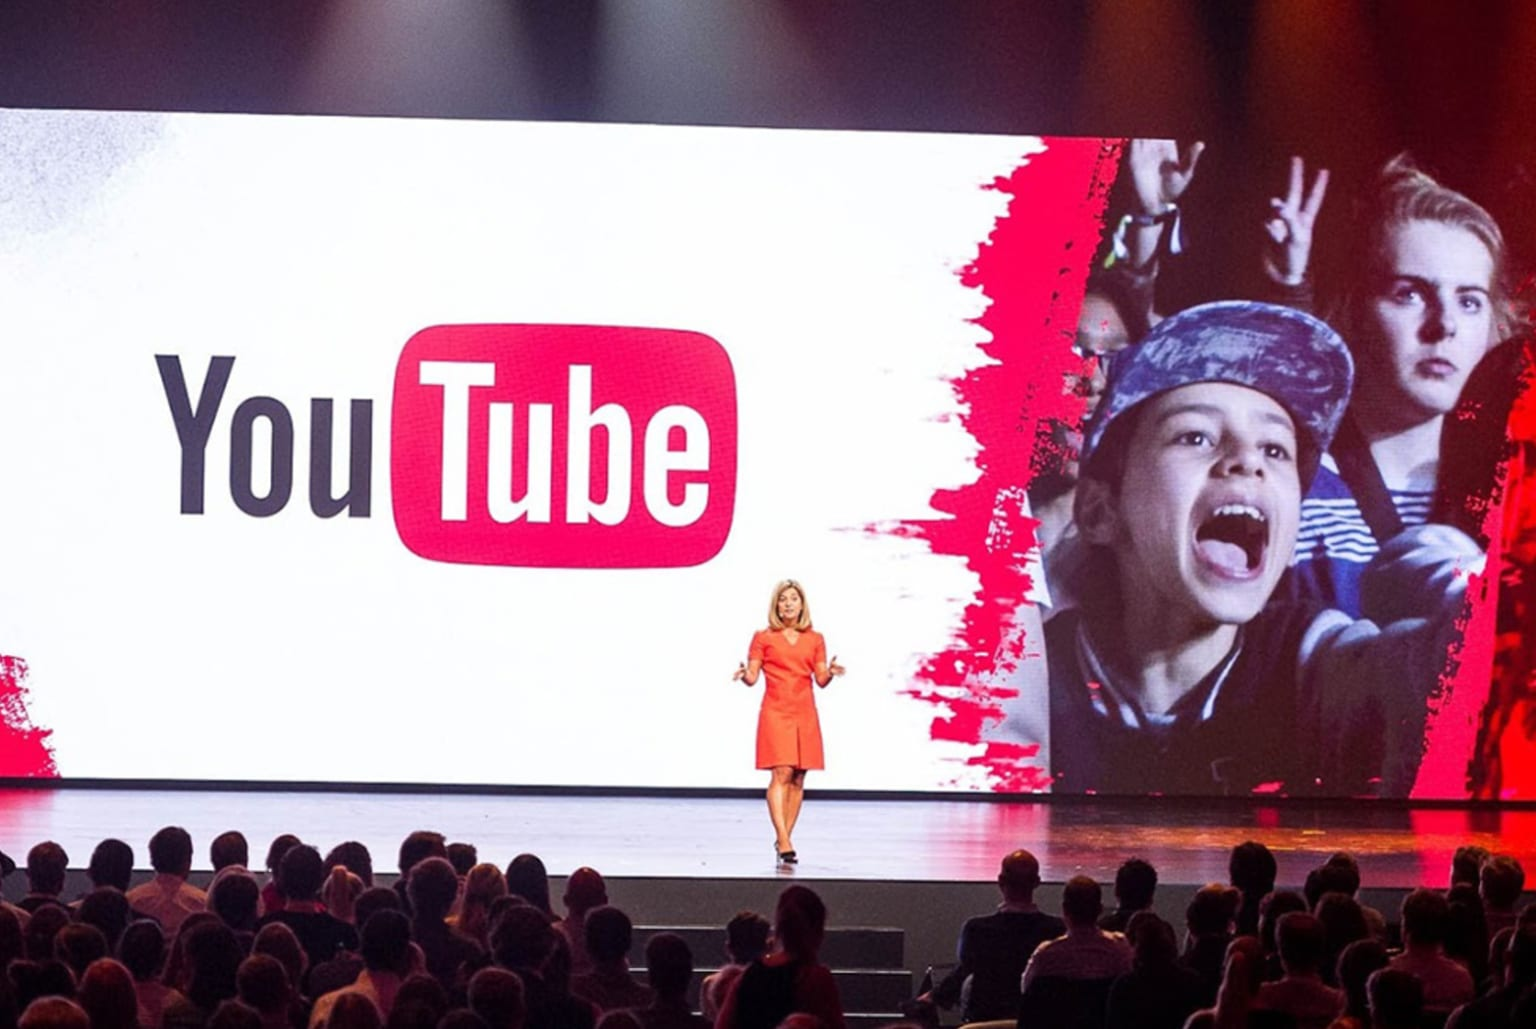 YouTube Brandcast Video Production